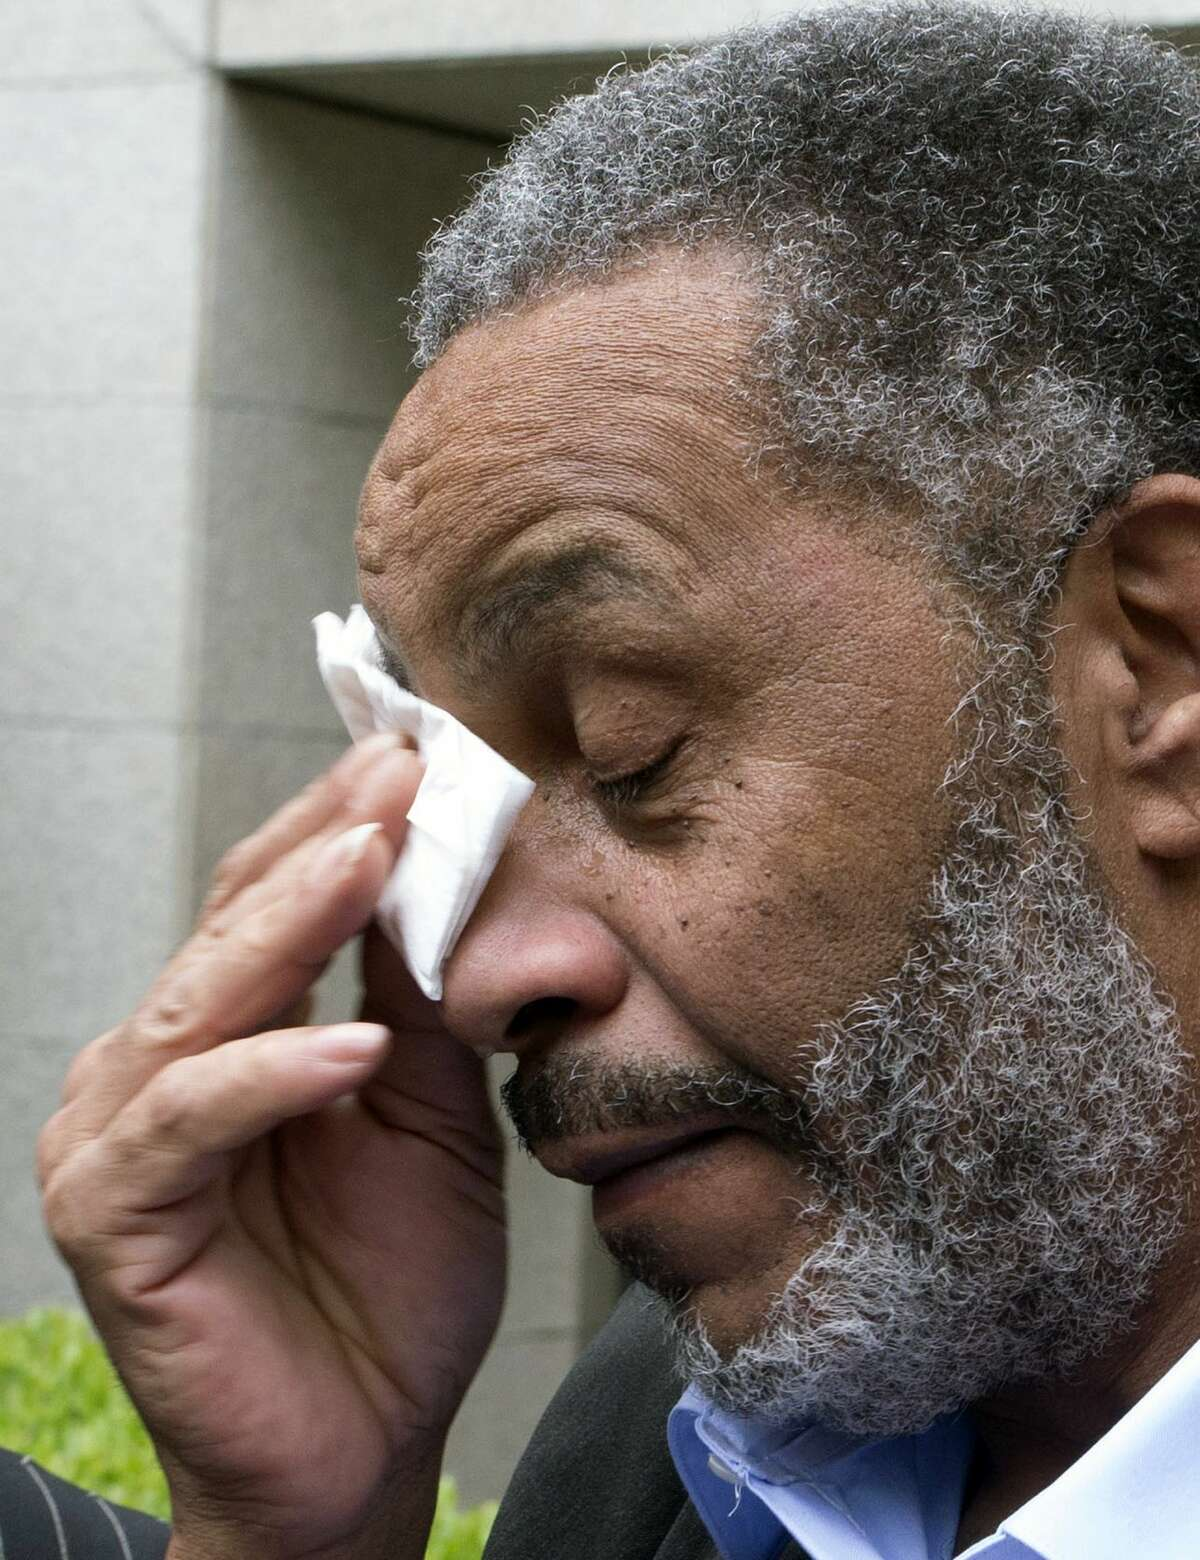 Anthony Ray Hinton wipes away tears after greeting friends and relatives upon leaving the Jefferson County jail, Friday, April 3, 2015, in Birmingham, Ala. Hinton spent nearly 30 years on Alabama's death row, and was set free Friday after prosecutors told a judge they won't re-try him for the 1985 slayings of two fast-food managers.